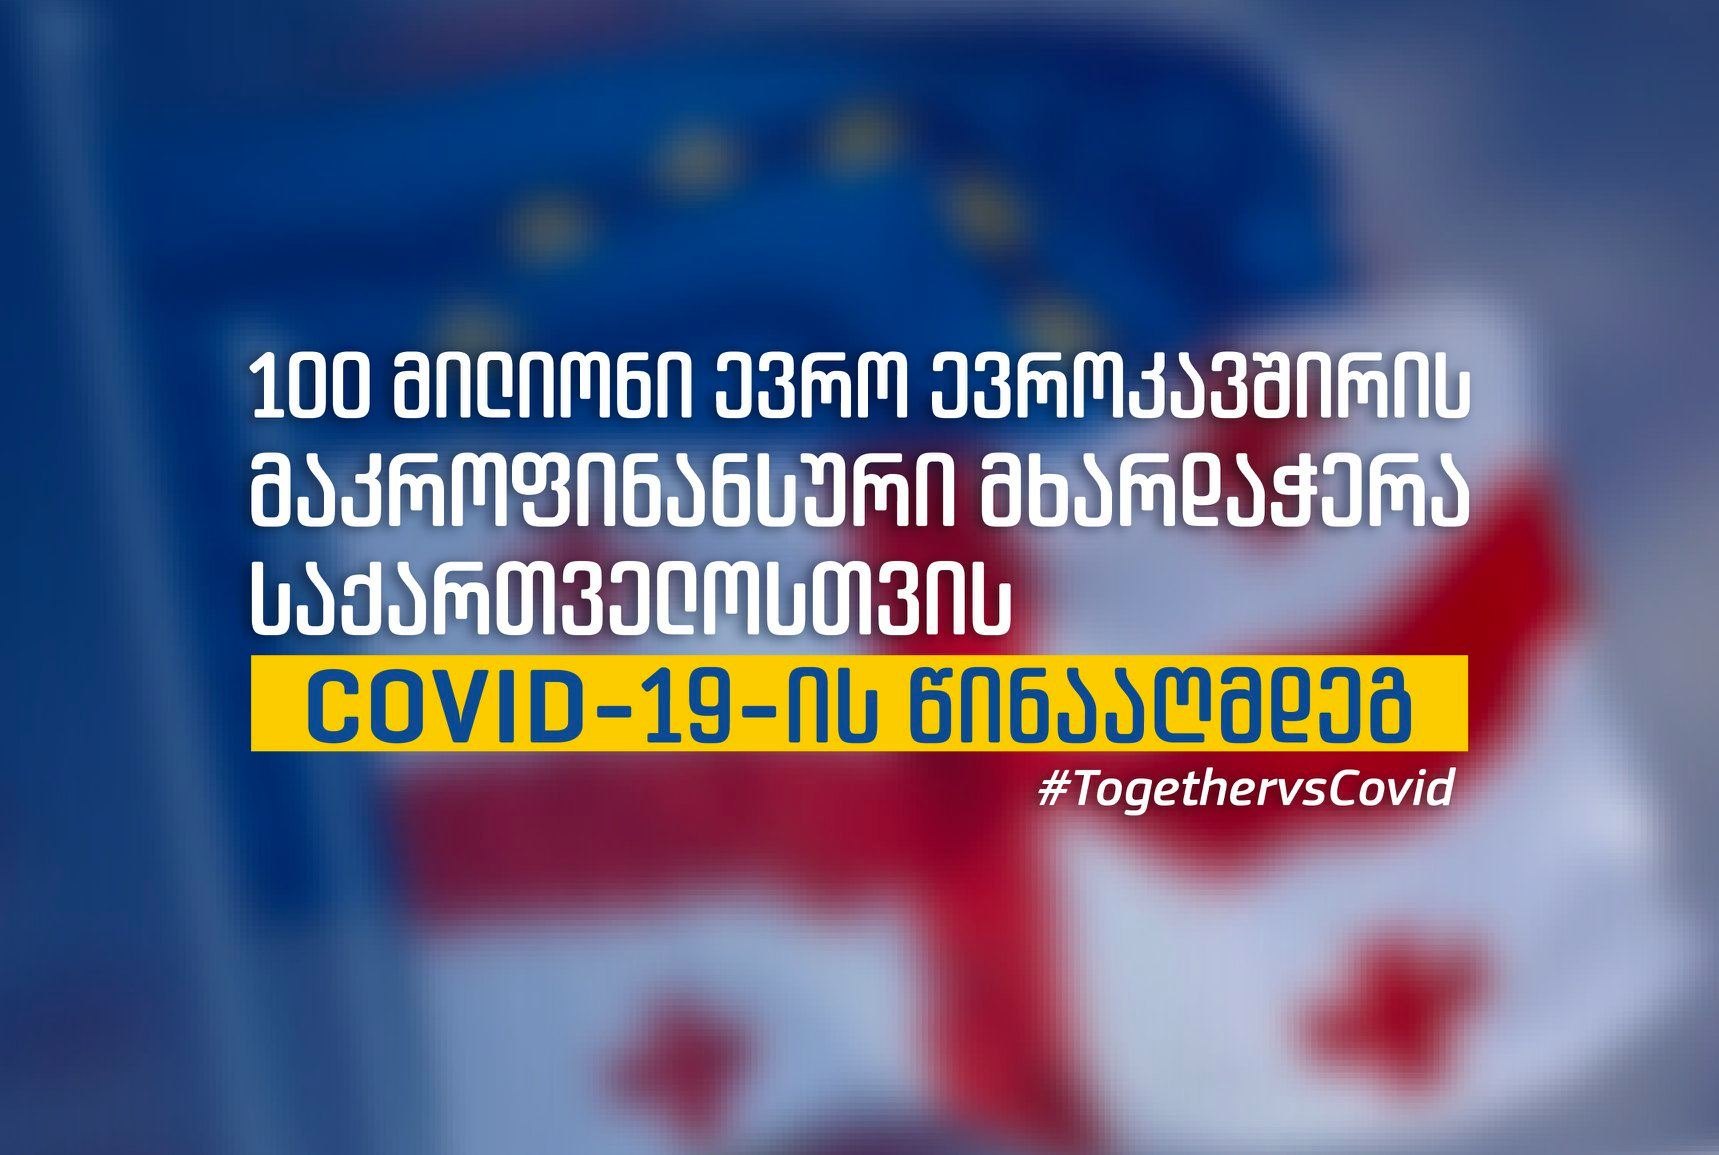 The EU transferred €100 million today as part of our COVID-19 support to Georgia